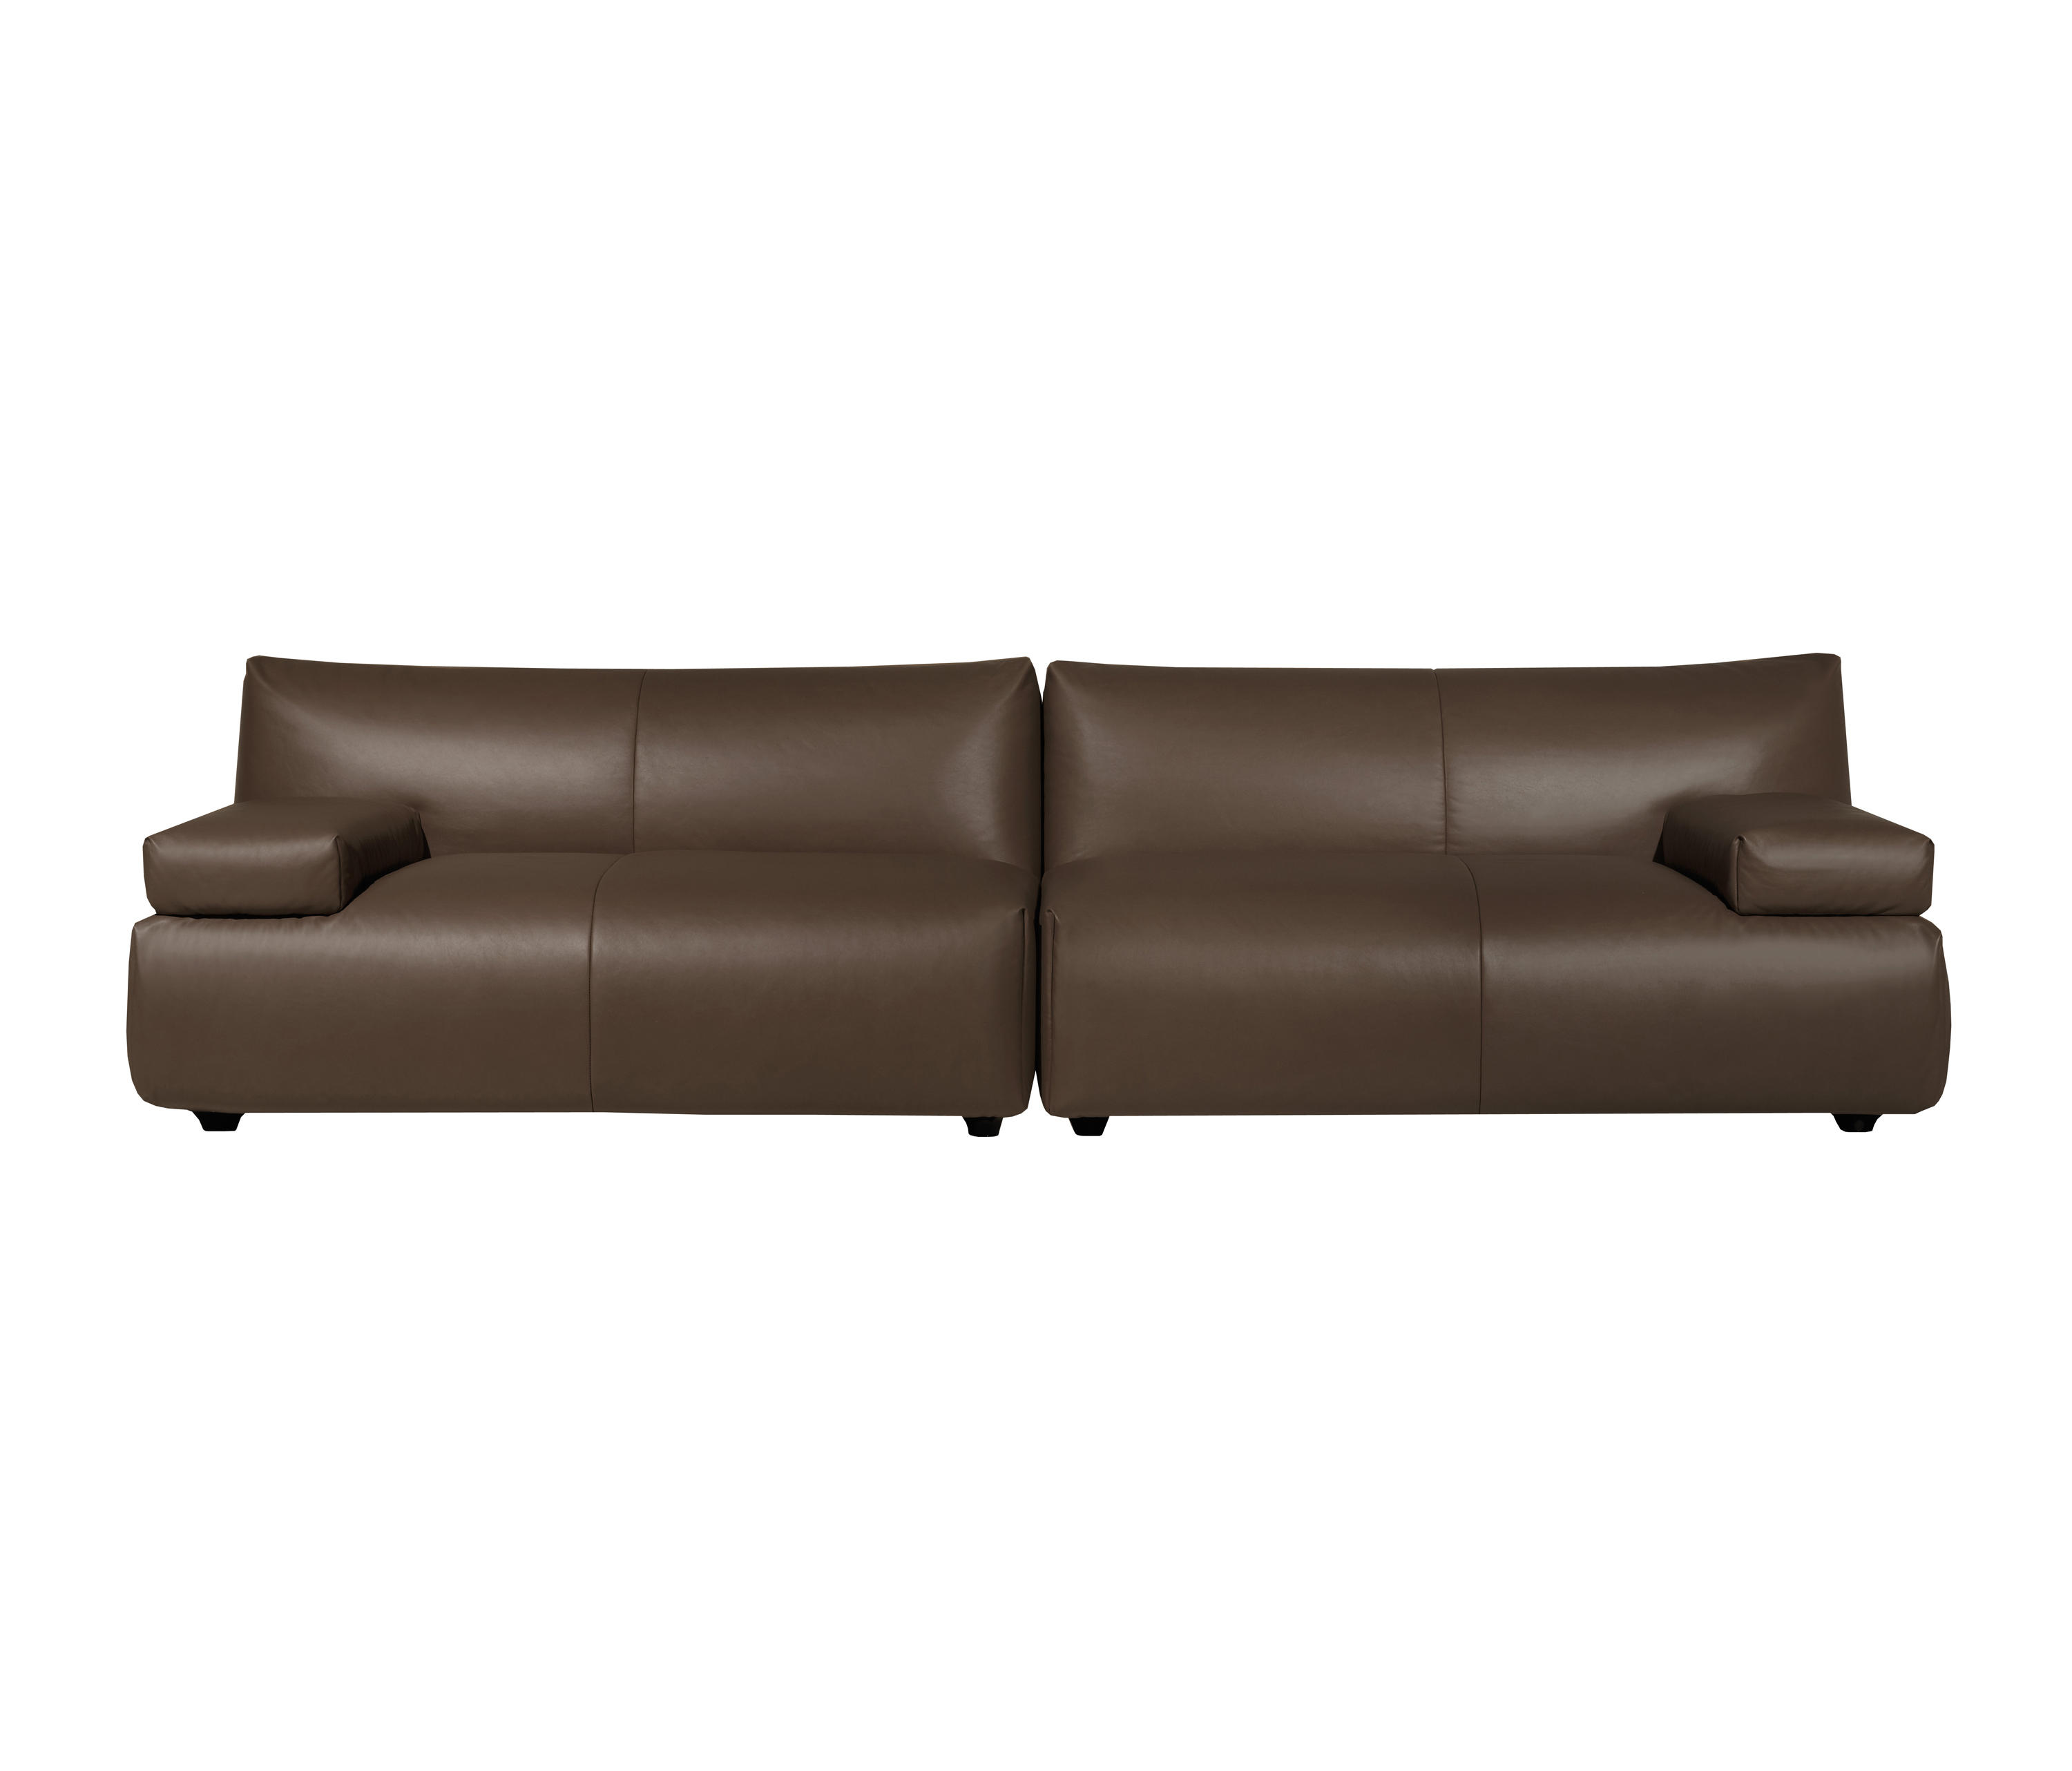 ottoman set taupe with couch sofa tan pin sectional piece bacarat